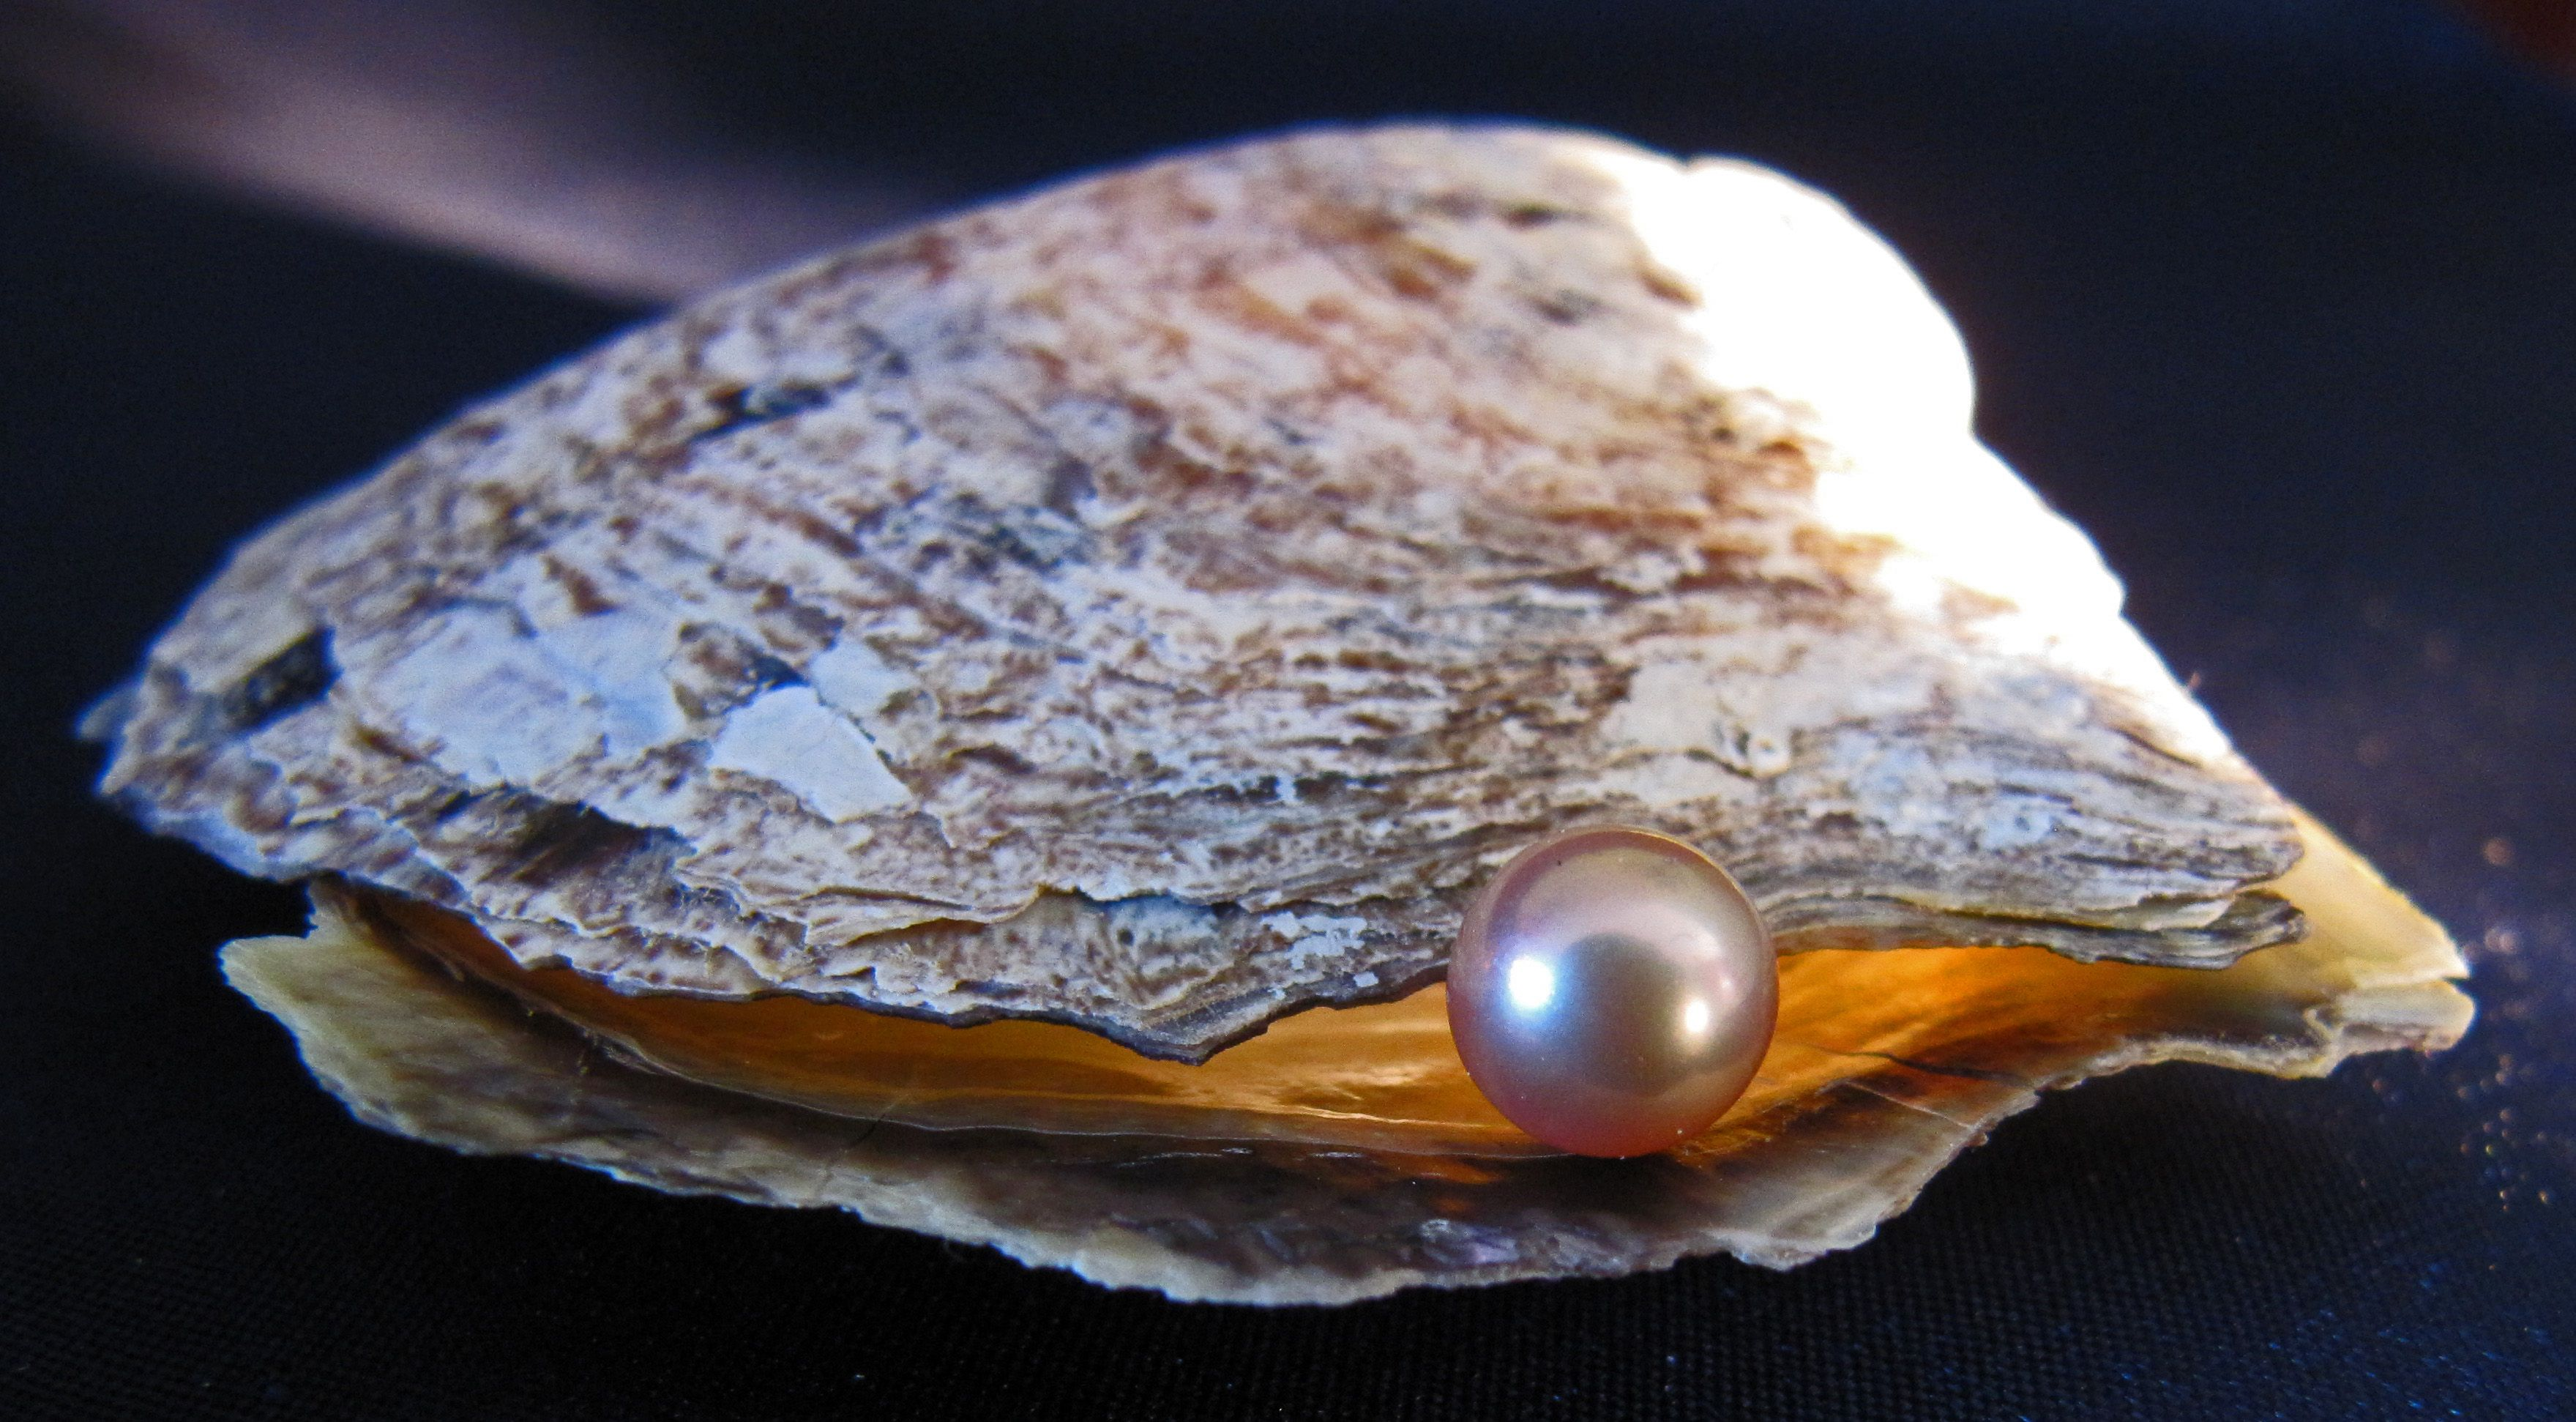 Pearl and Oyster Shell Open Oyster Shell With Pearl